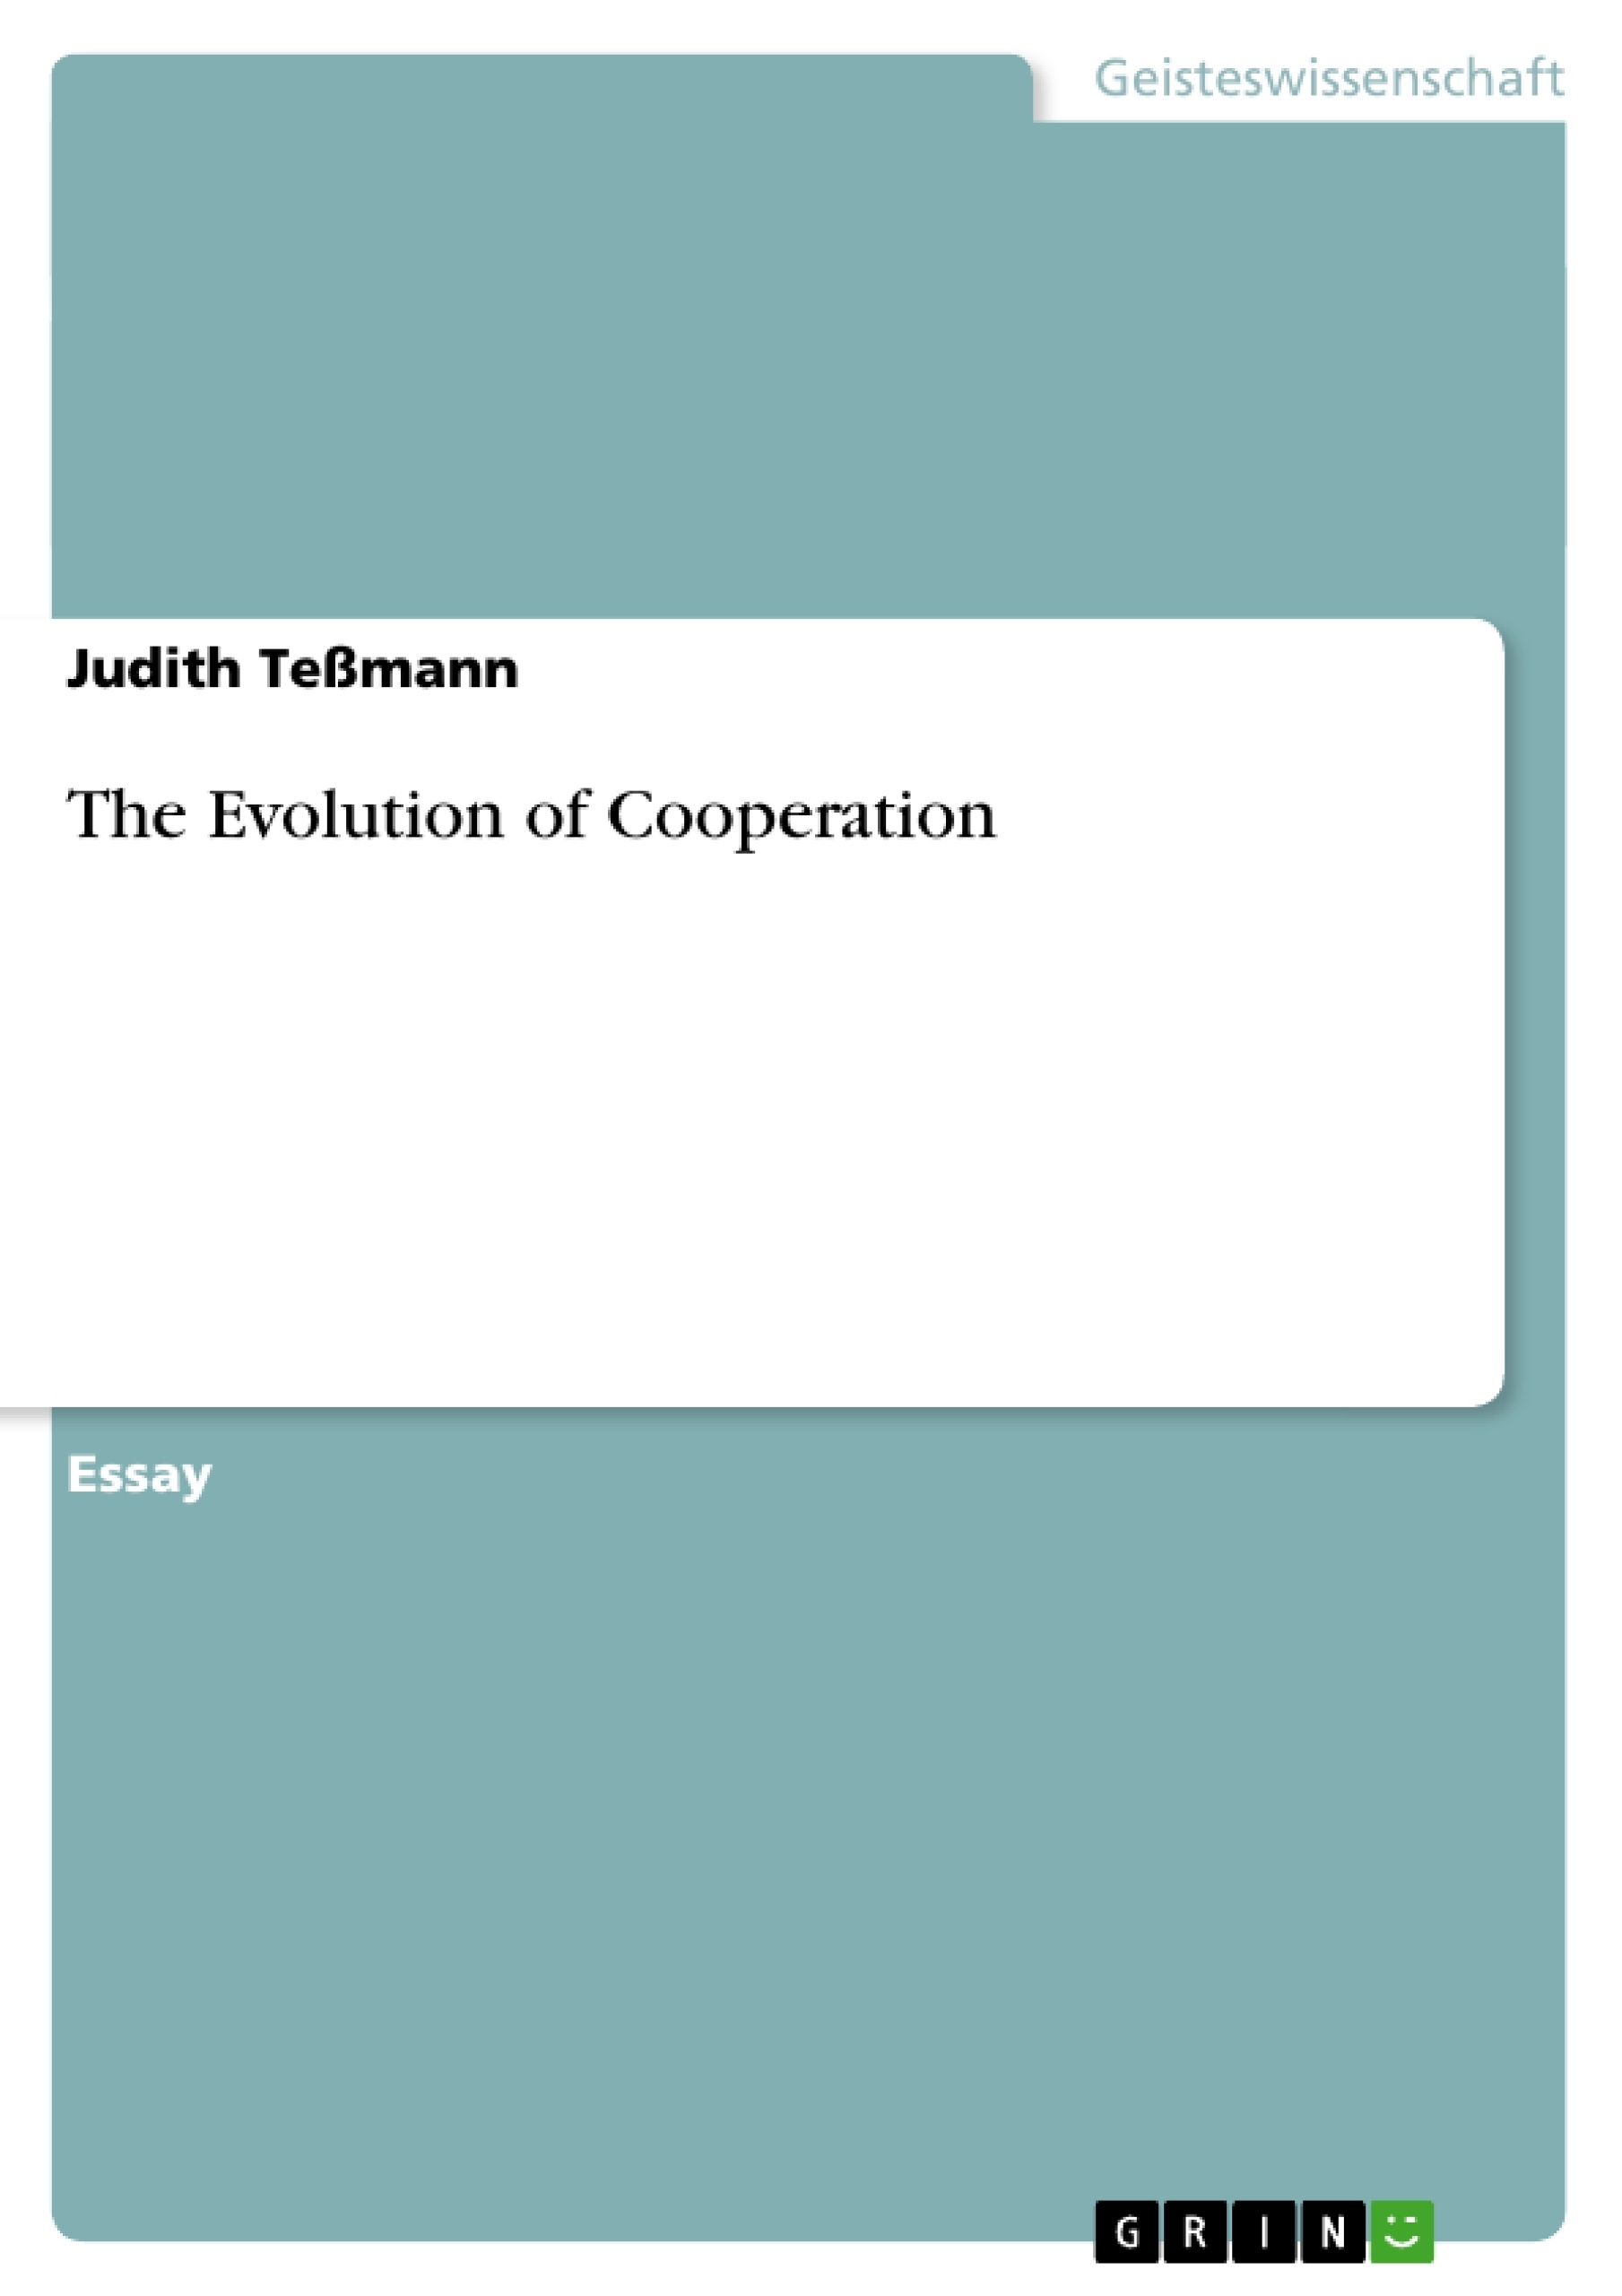 Titel: The Evolution of Cooperation